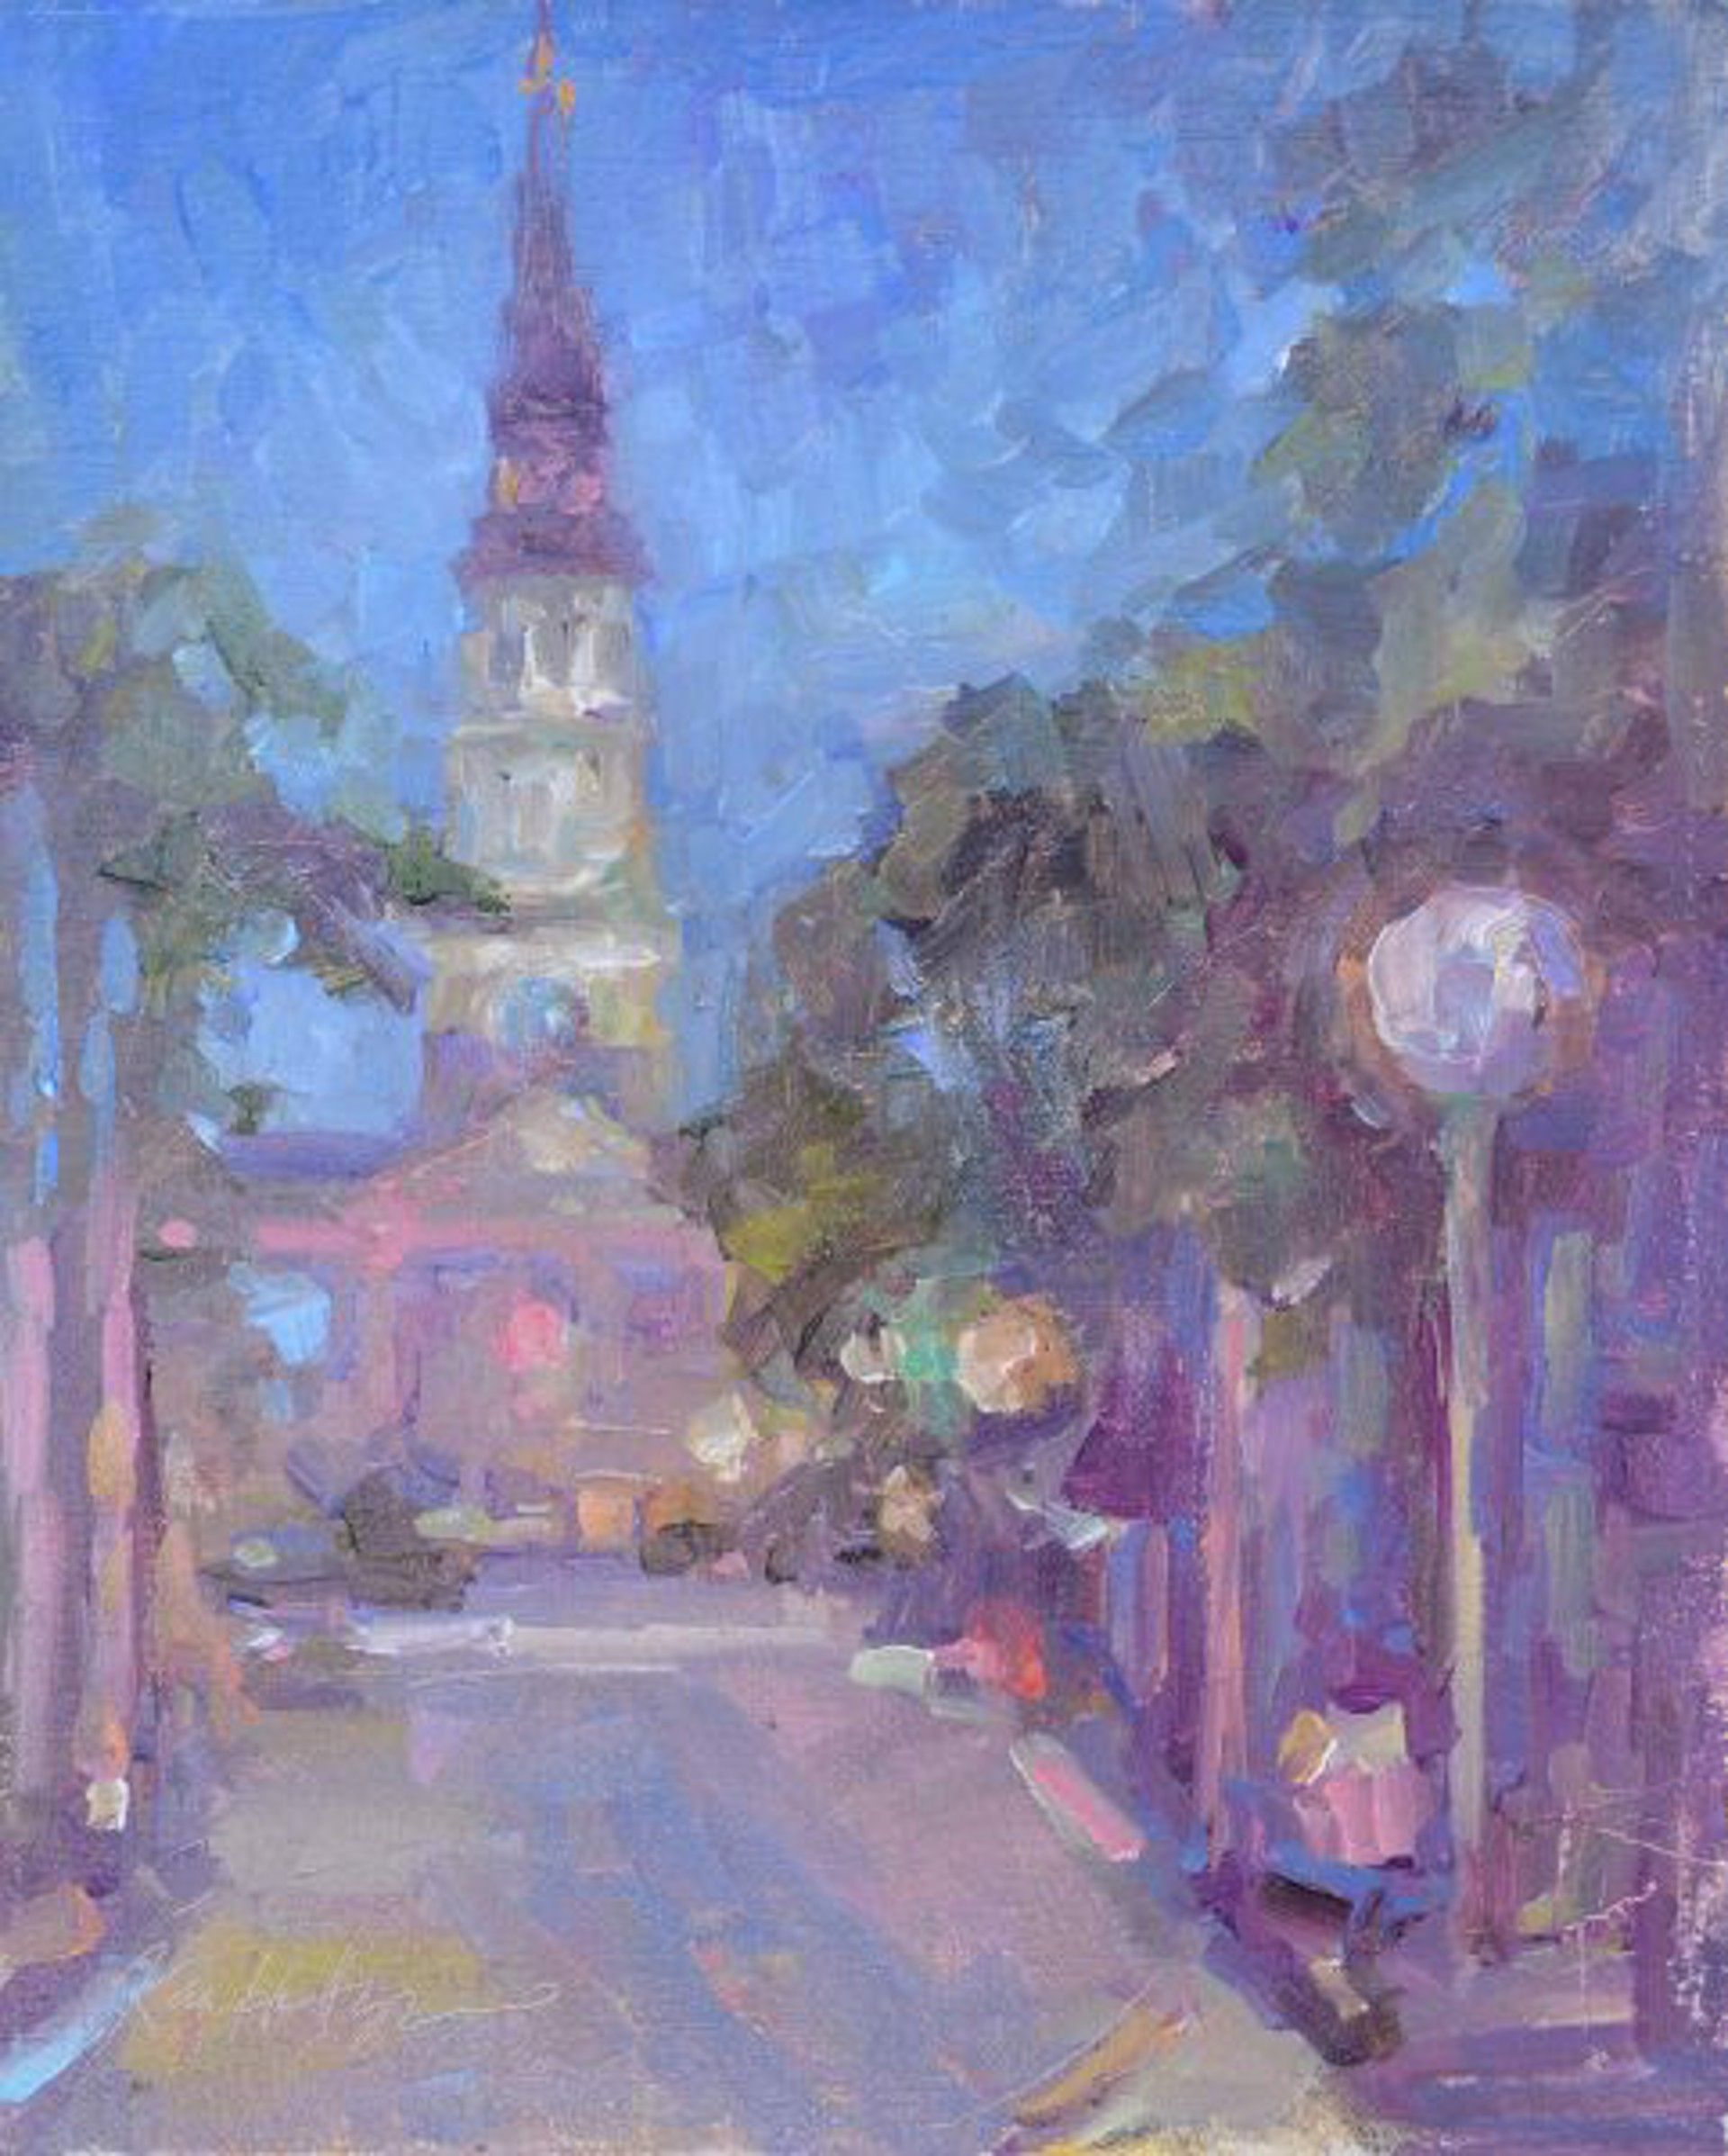 Lights at the End of the Road (St Philip's Church) by Karen Hewitt Hagan